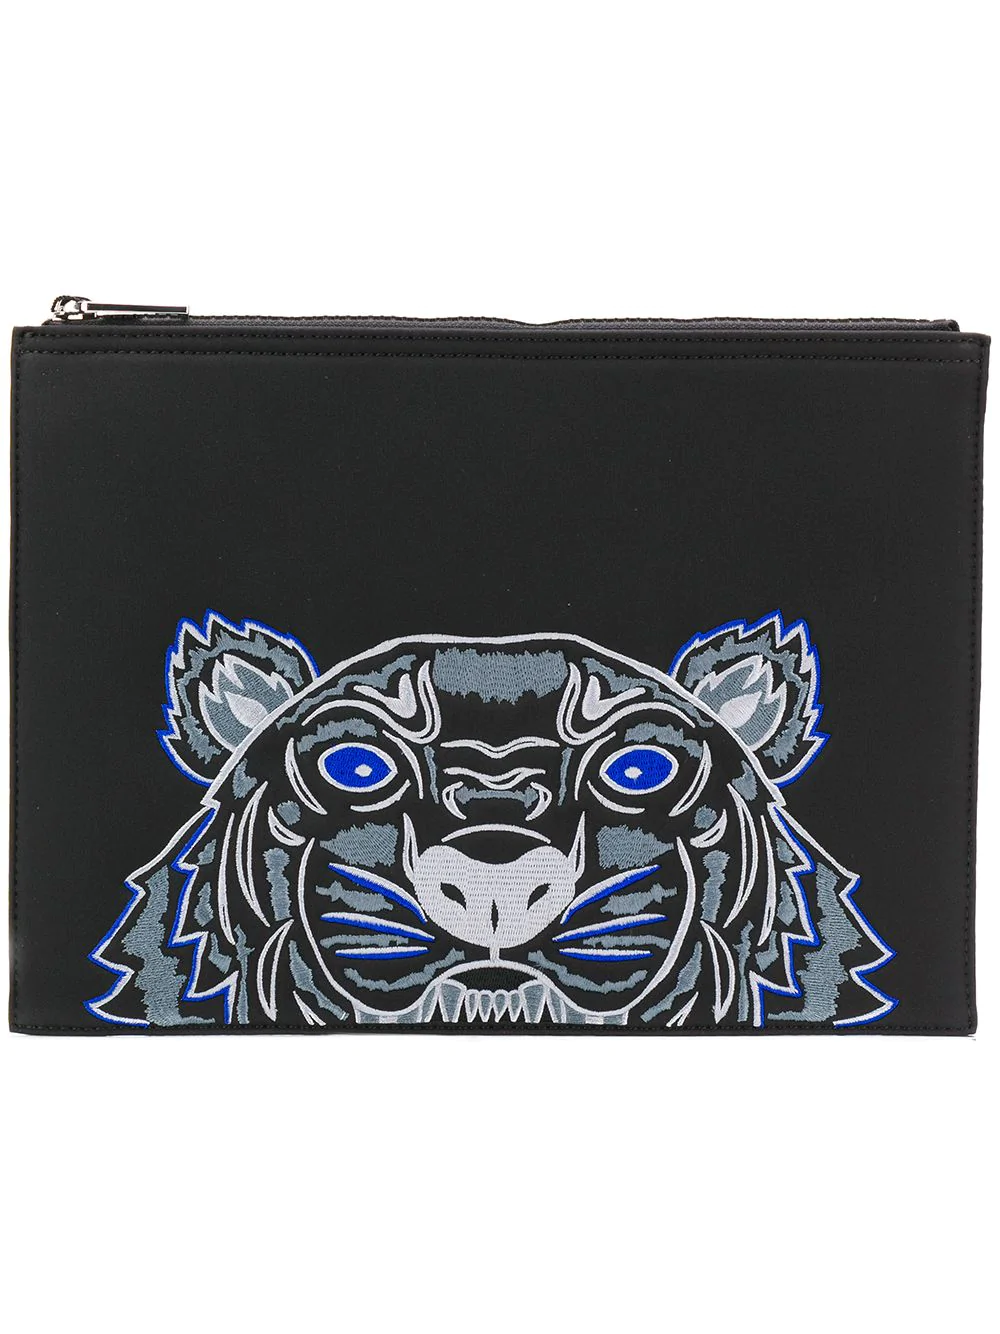 cde275768e0 Kenzo Tiger Clutch Bag - Black | ModeSens